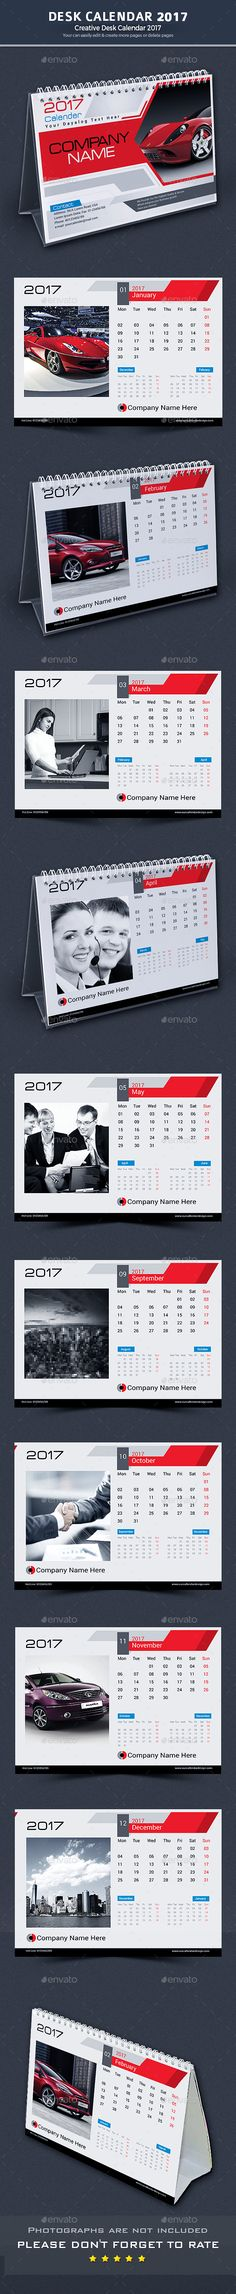 how to make a calendar in indesign - Boatjeremyeaton